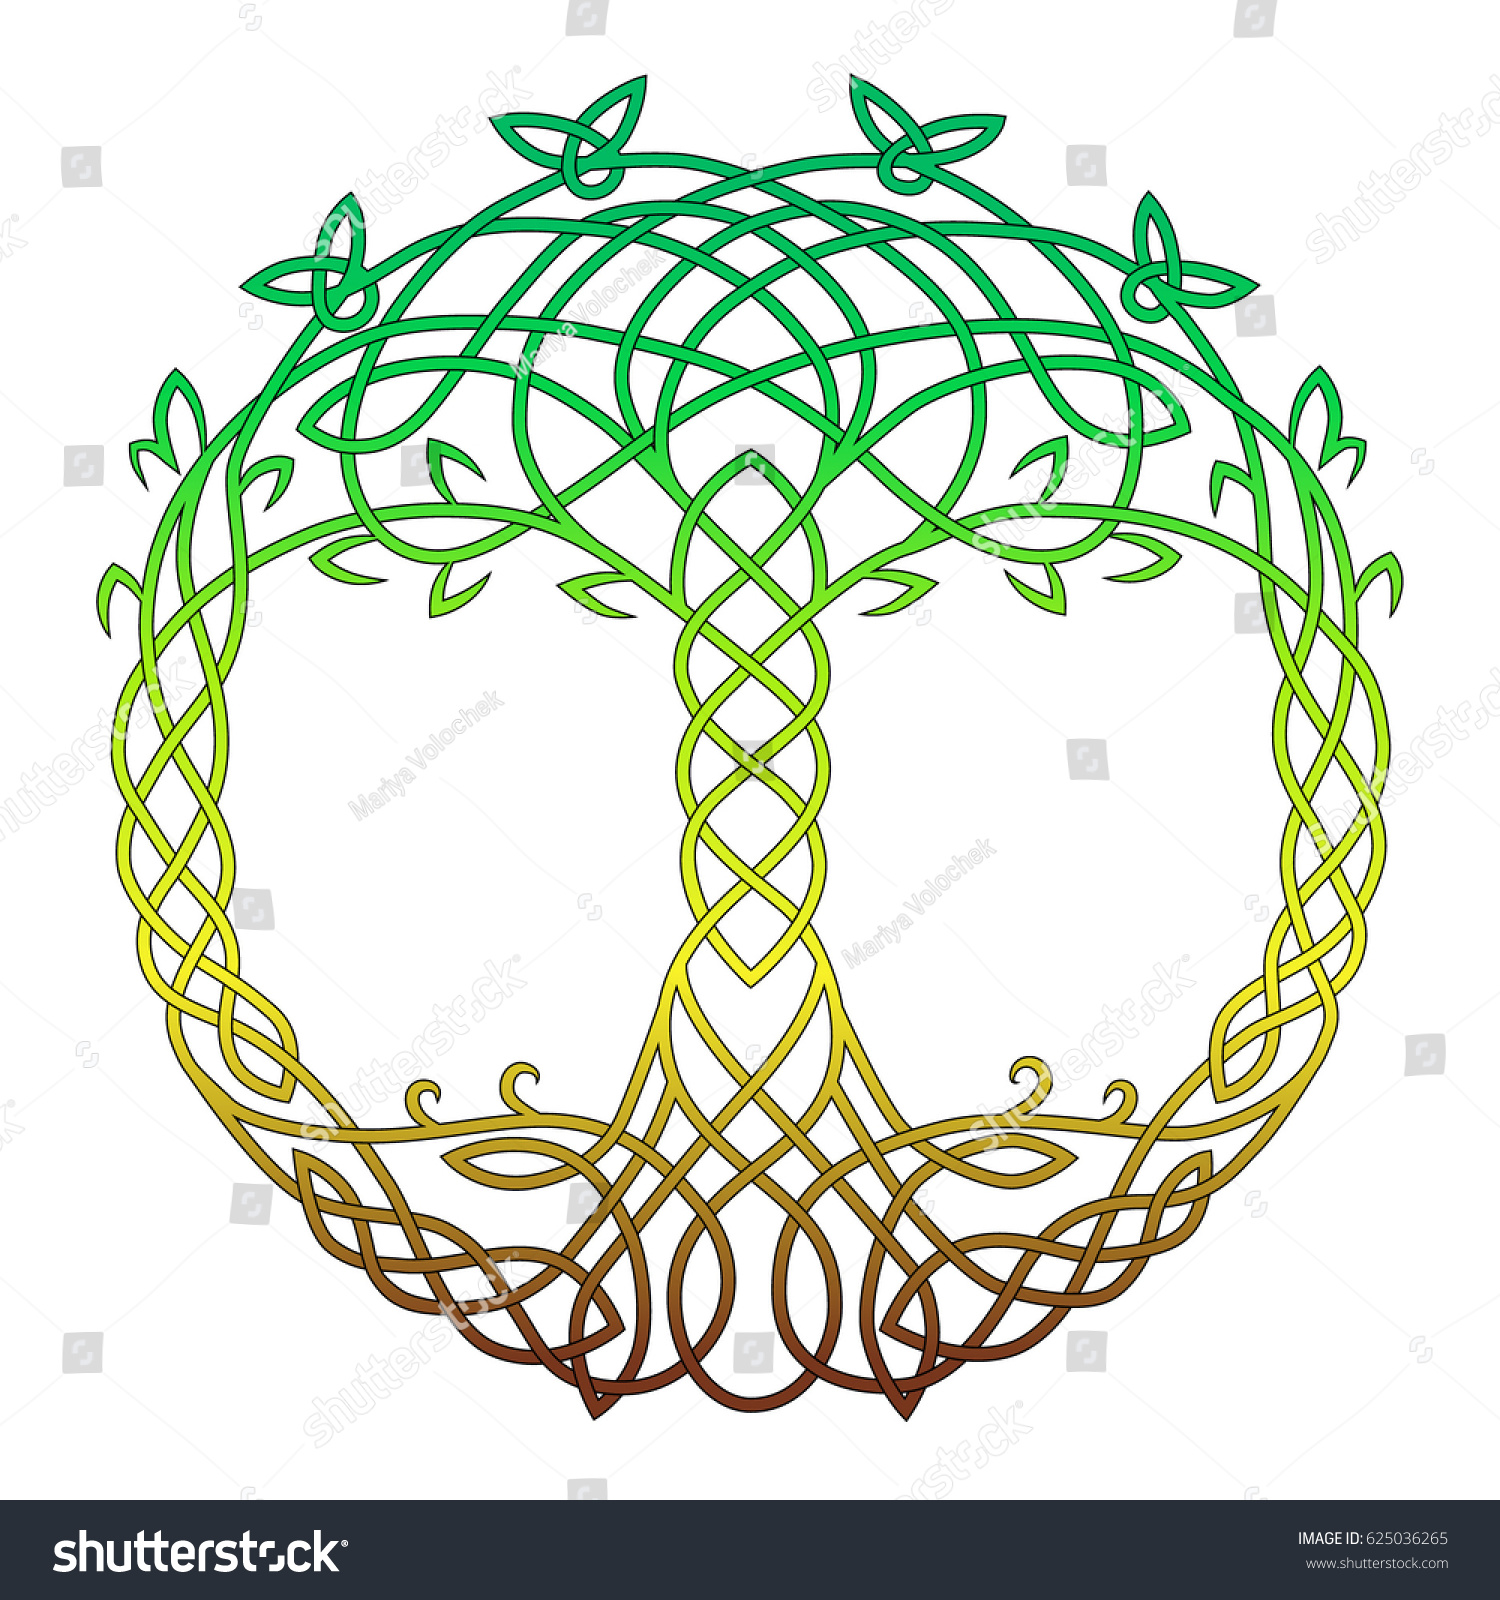 Celtic Round Drawing Symbol Tree Life Stock Vector (Royalty Free ...